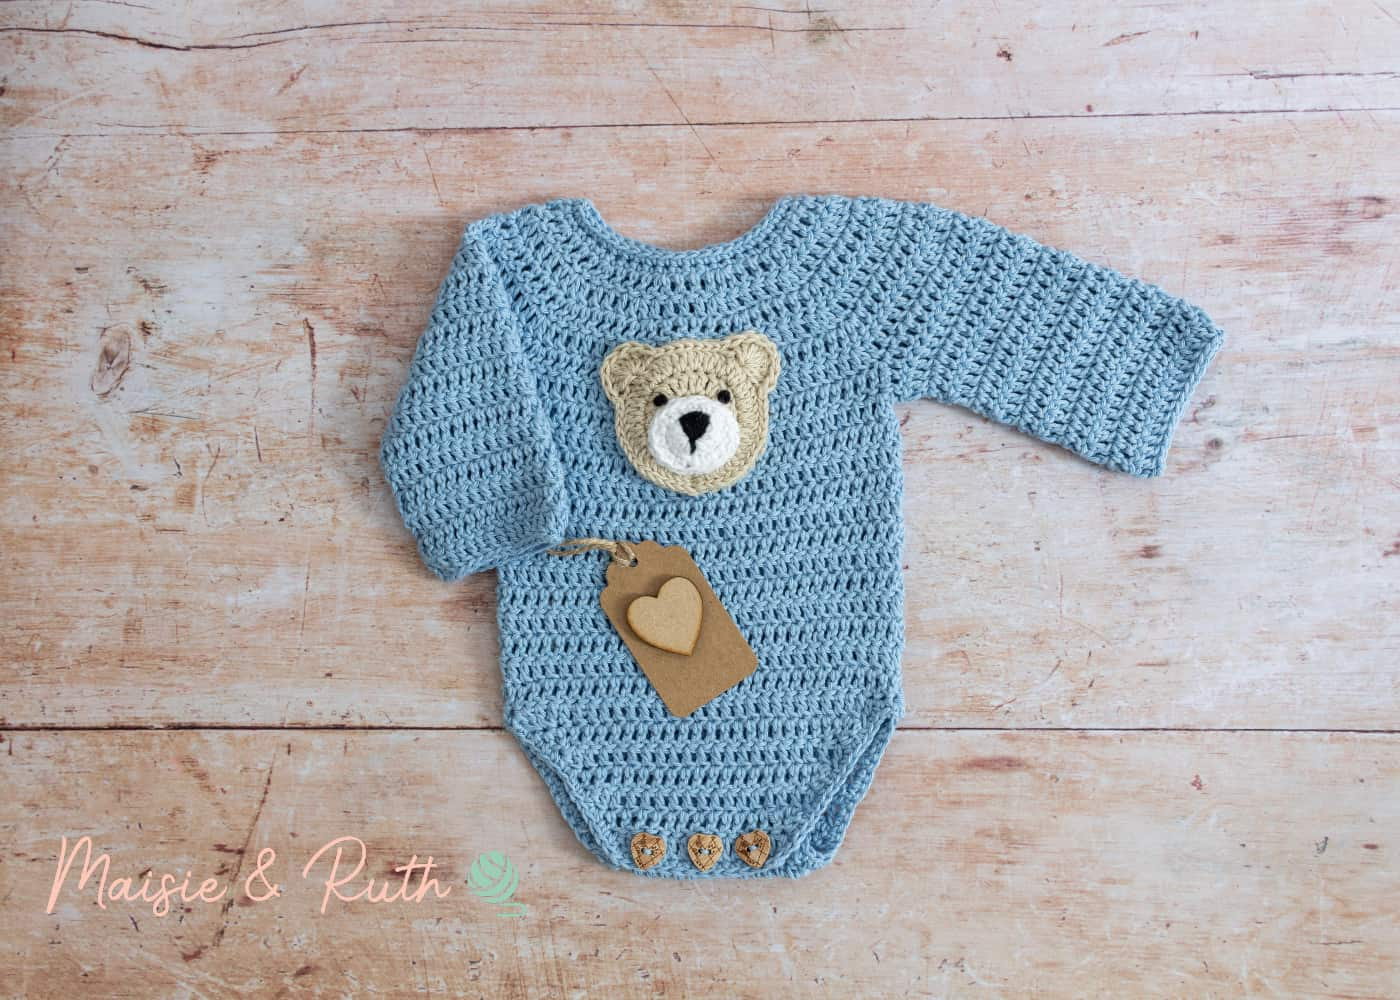 Crochet Baby Onesie Pattern with heart gift tag